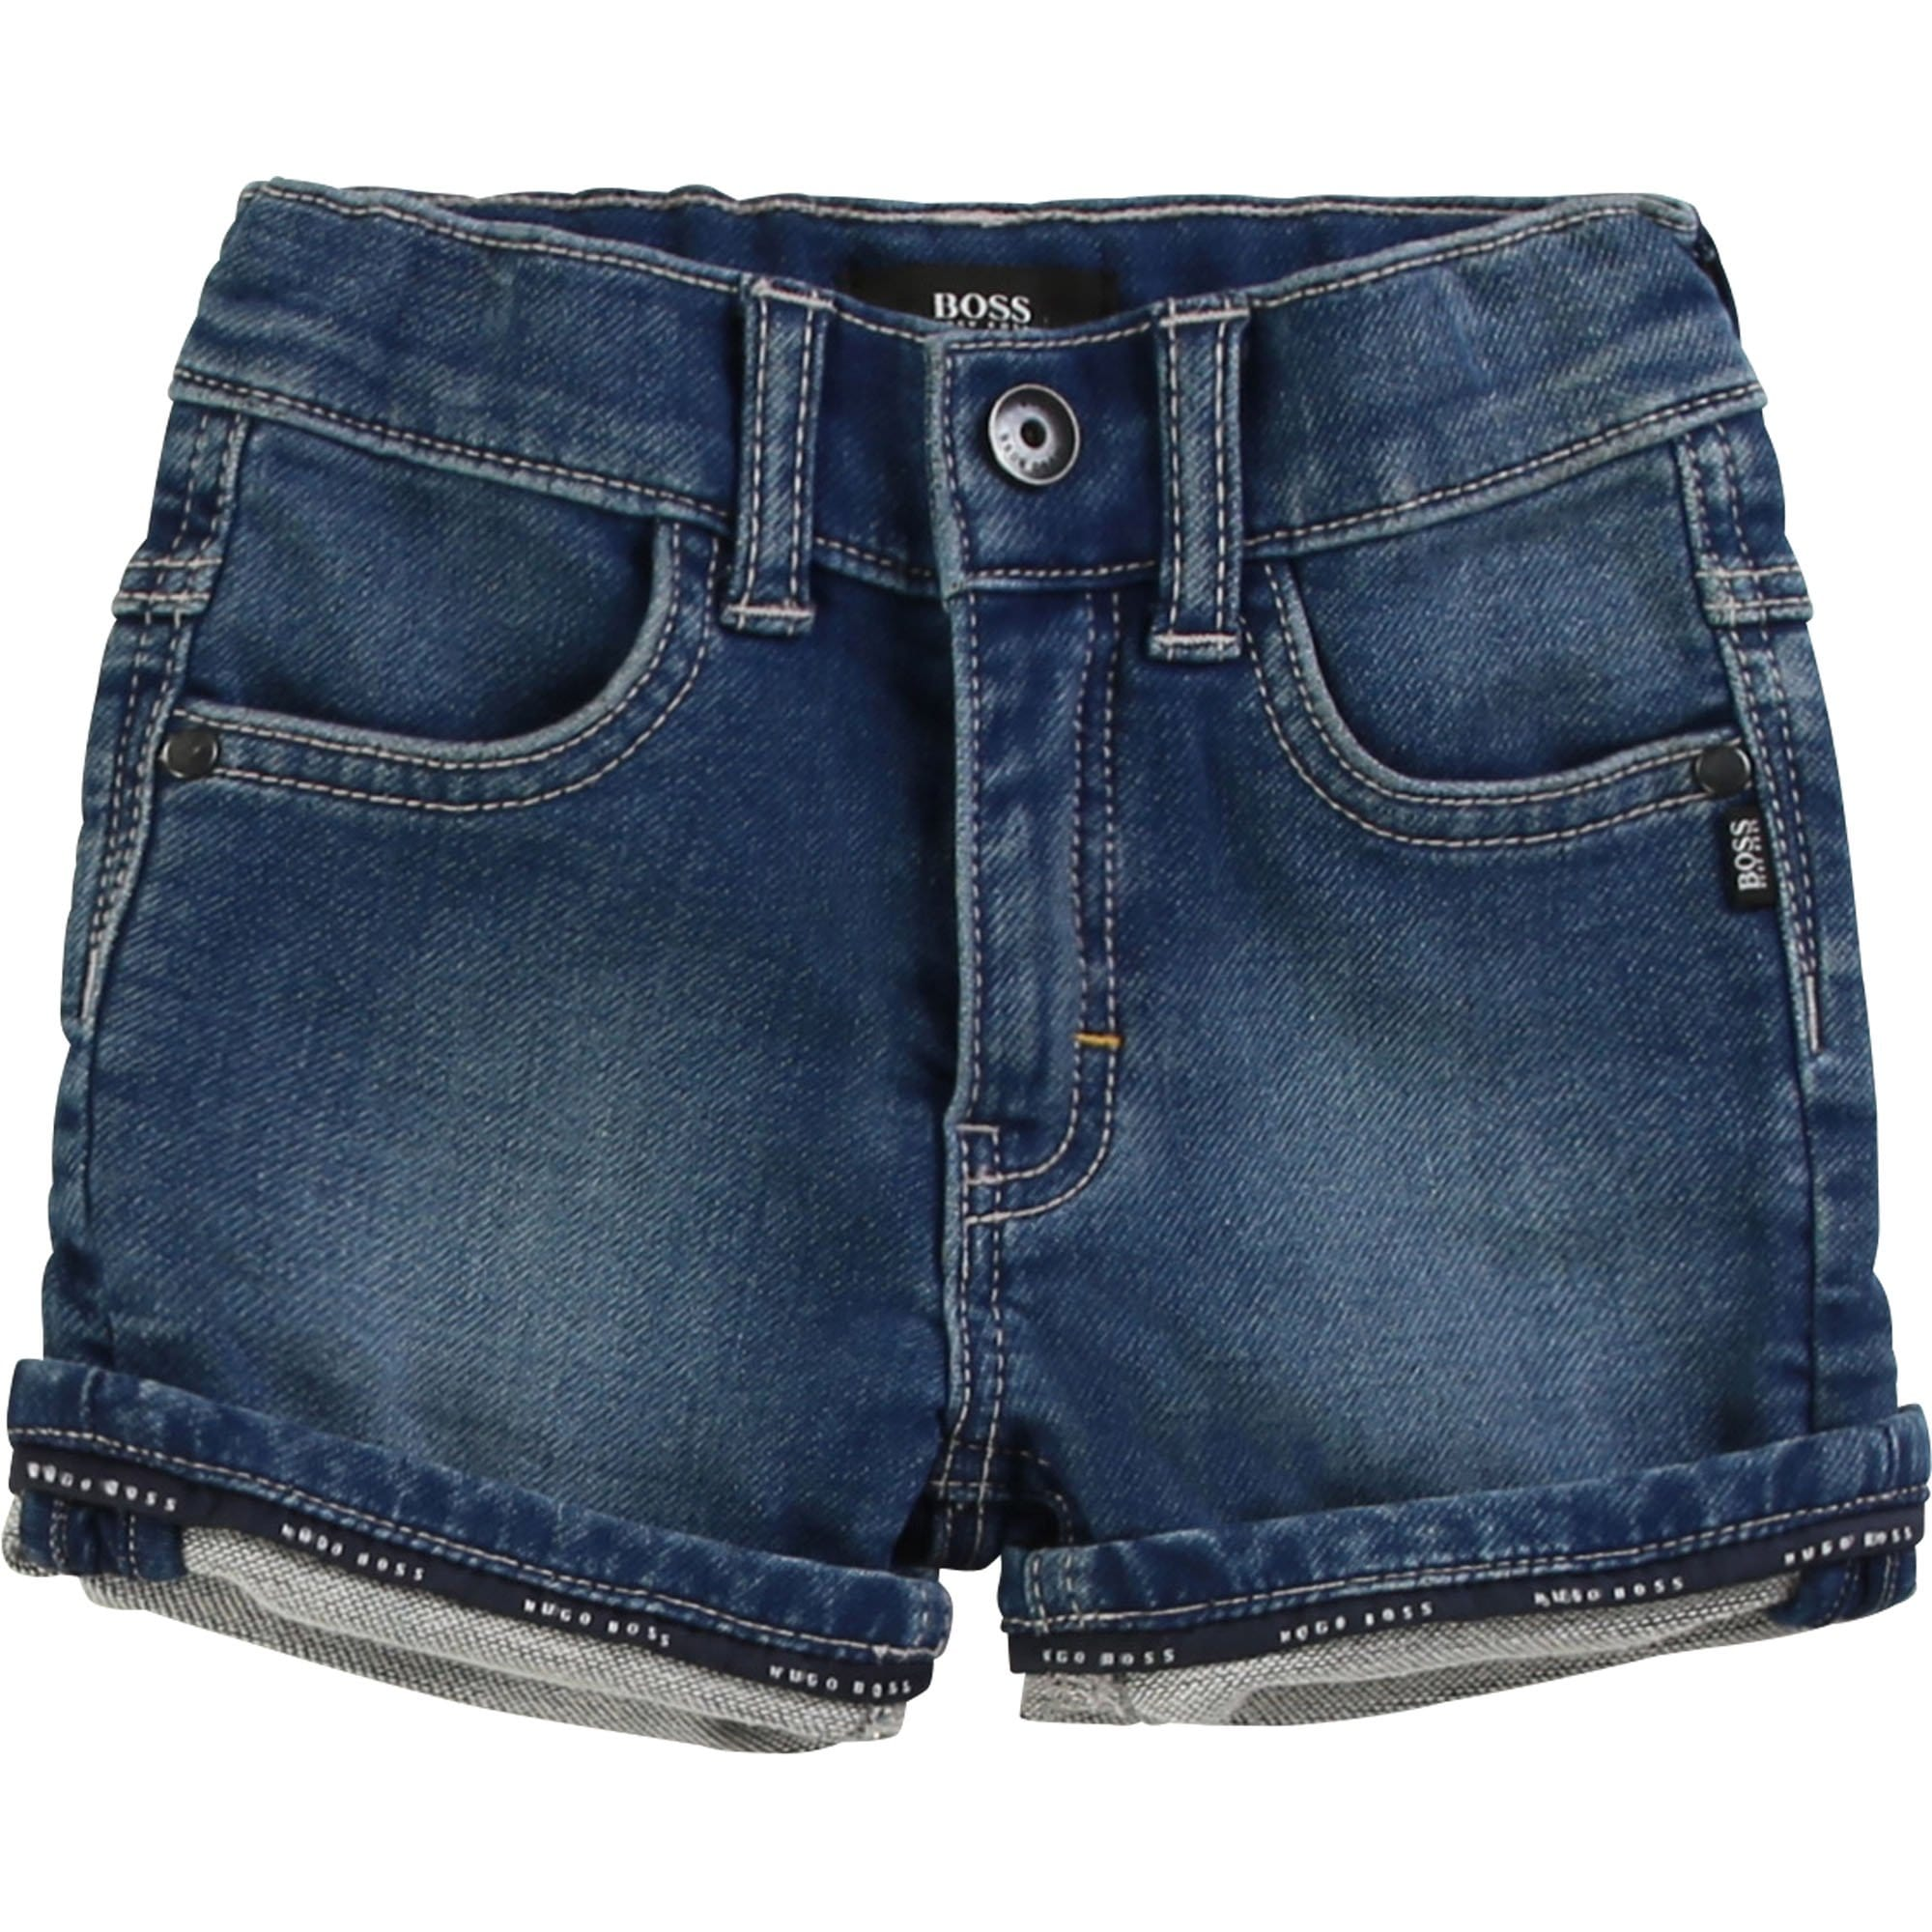 Hugo Boss Denim Bermuda Shorts J04373/Z07